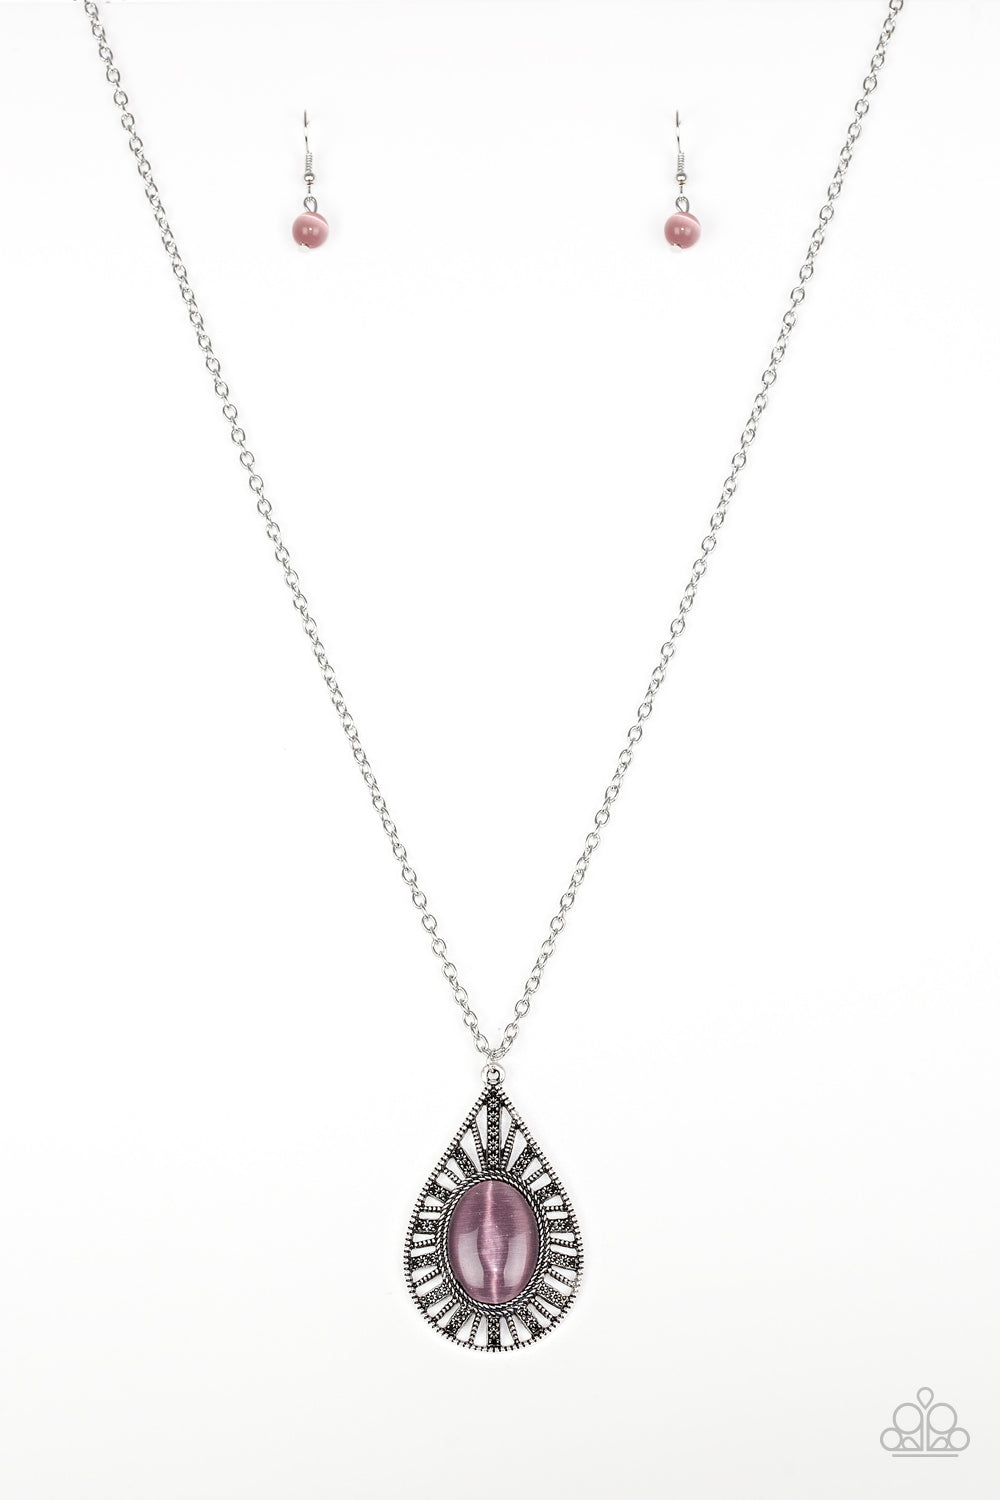 Total Tranquility - Purple - Long Necklace